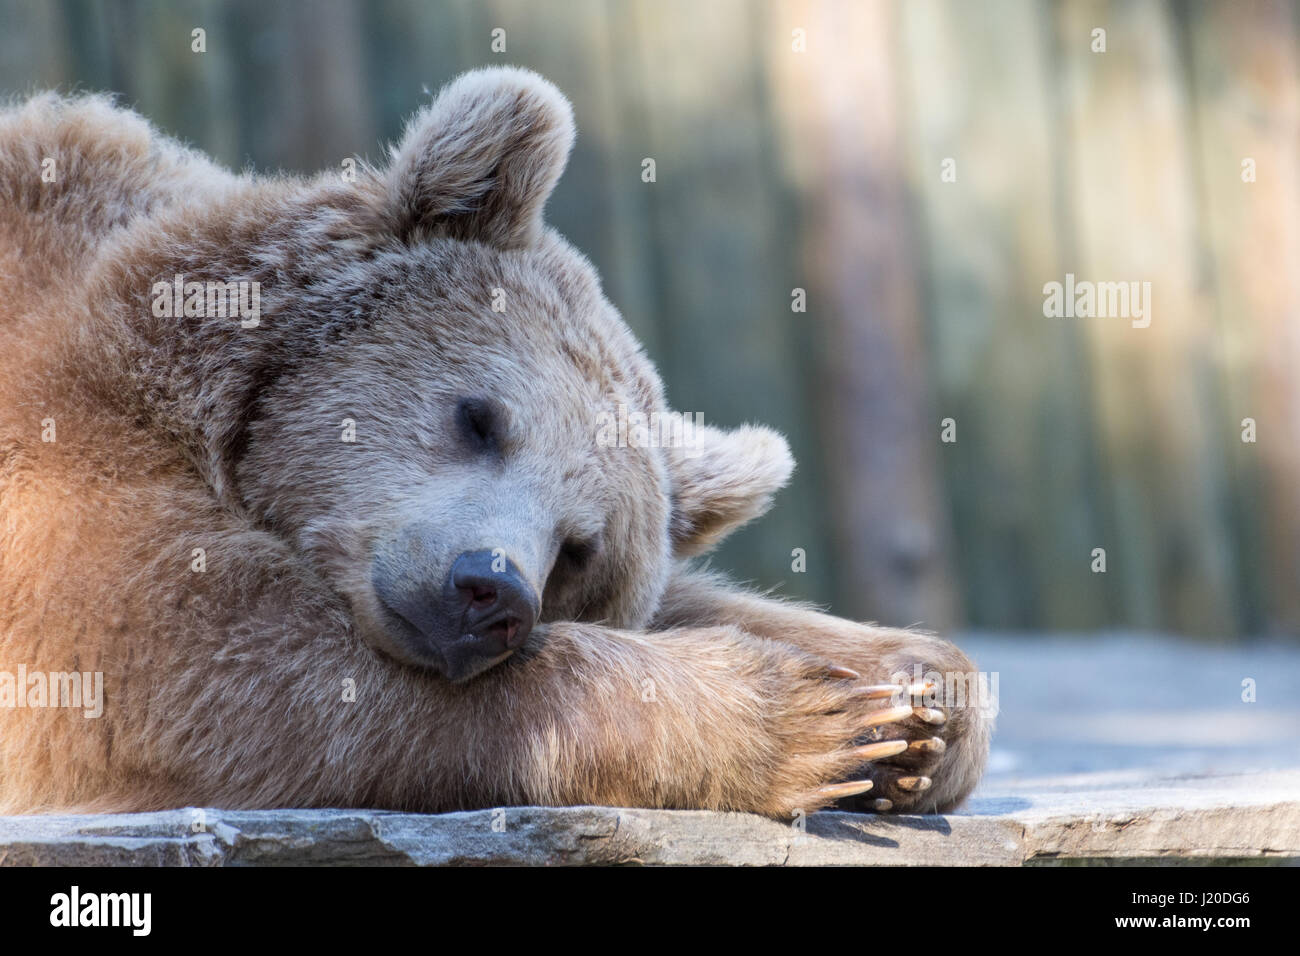 A tired brown bear sleeping in a zoo in Switzerland - Stock Image